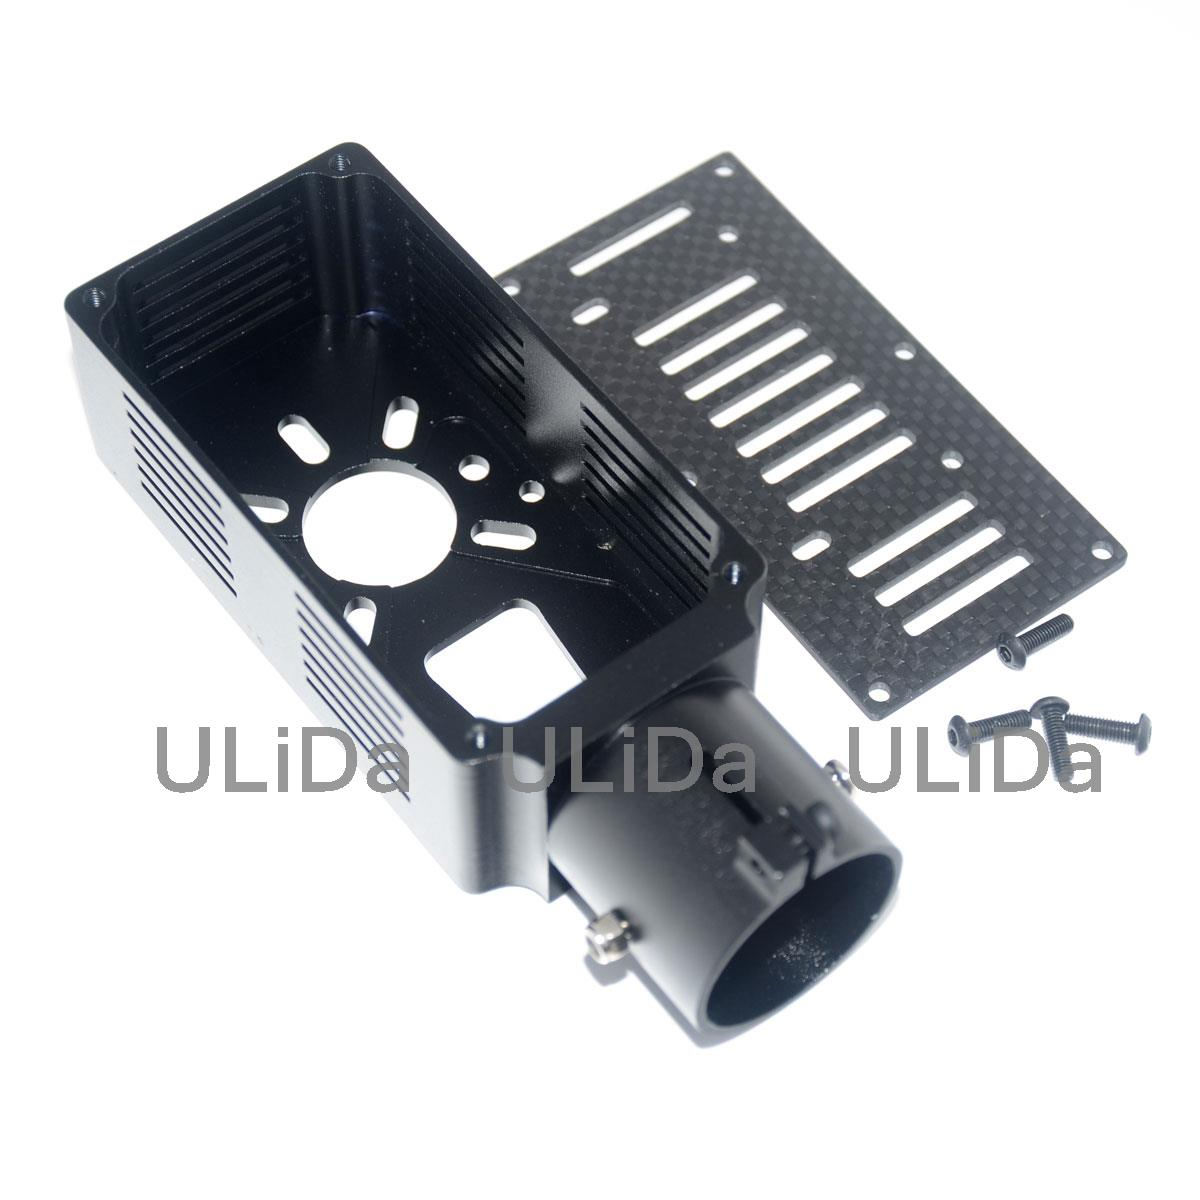 30mm CNC Aluminum Aerial Plant Protection UAV Motor Mount Holder for W9235 Q9XL 2pcs plant protection agricultural machine repair parts 30mm diameter of the carbon tube aluminum motor housing motor mount